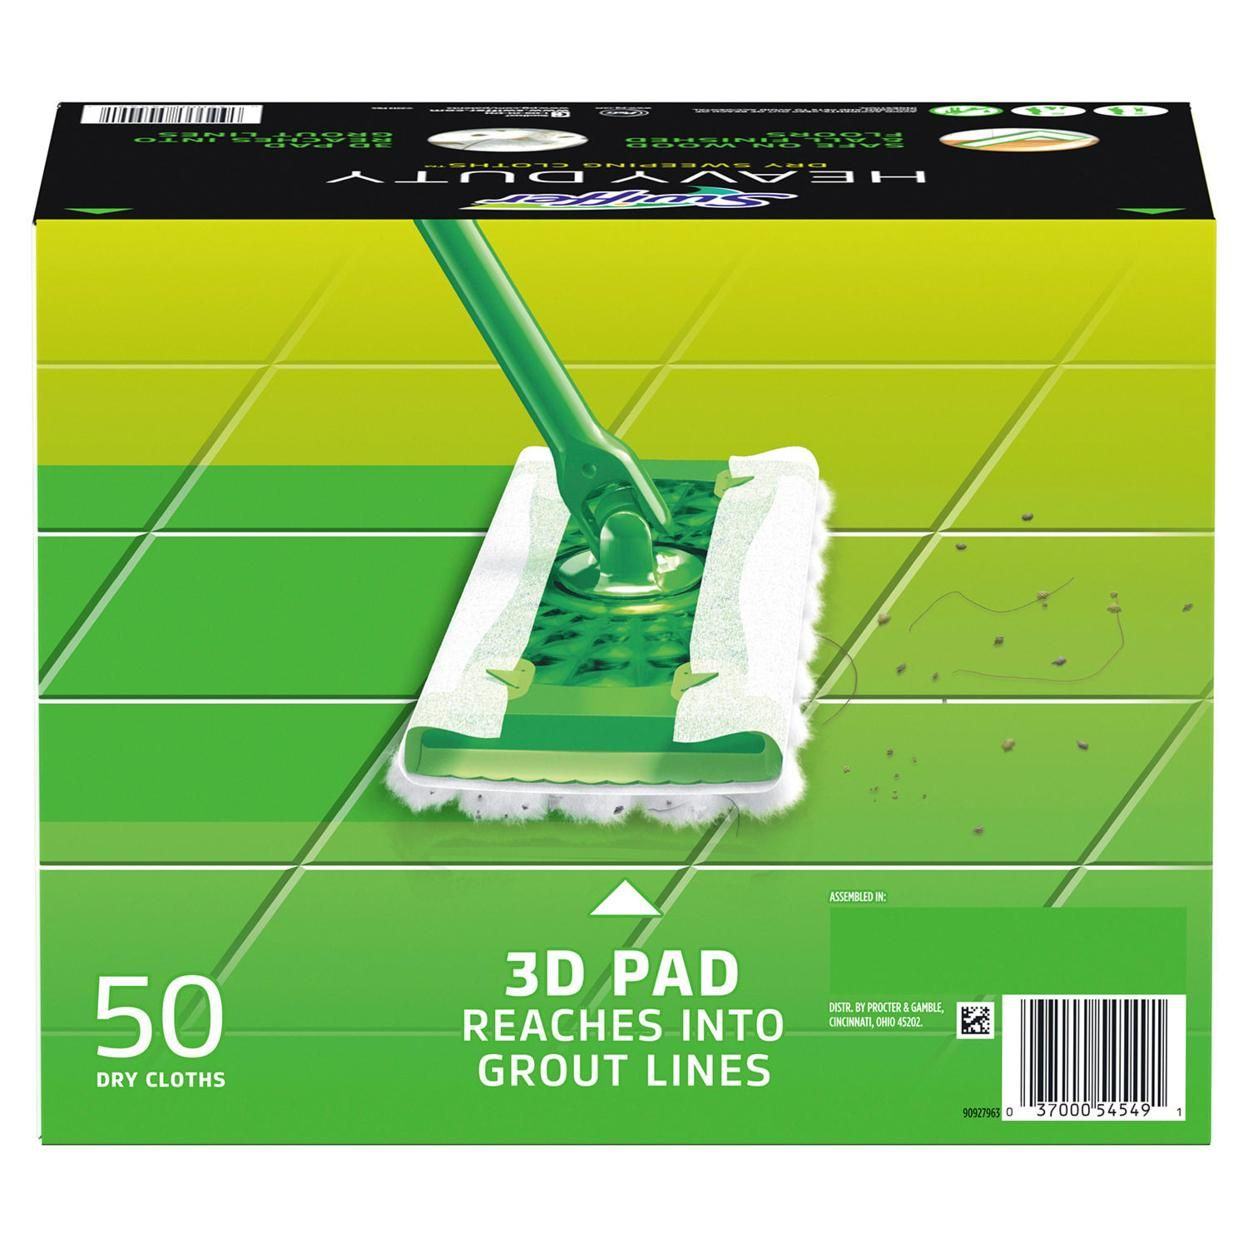 Swiffer Sweeper Heavy Duty Dry Sweeping Cloths (50 Count)